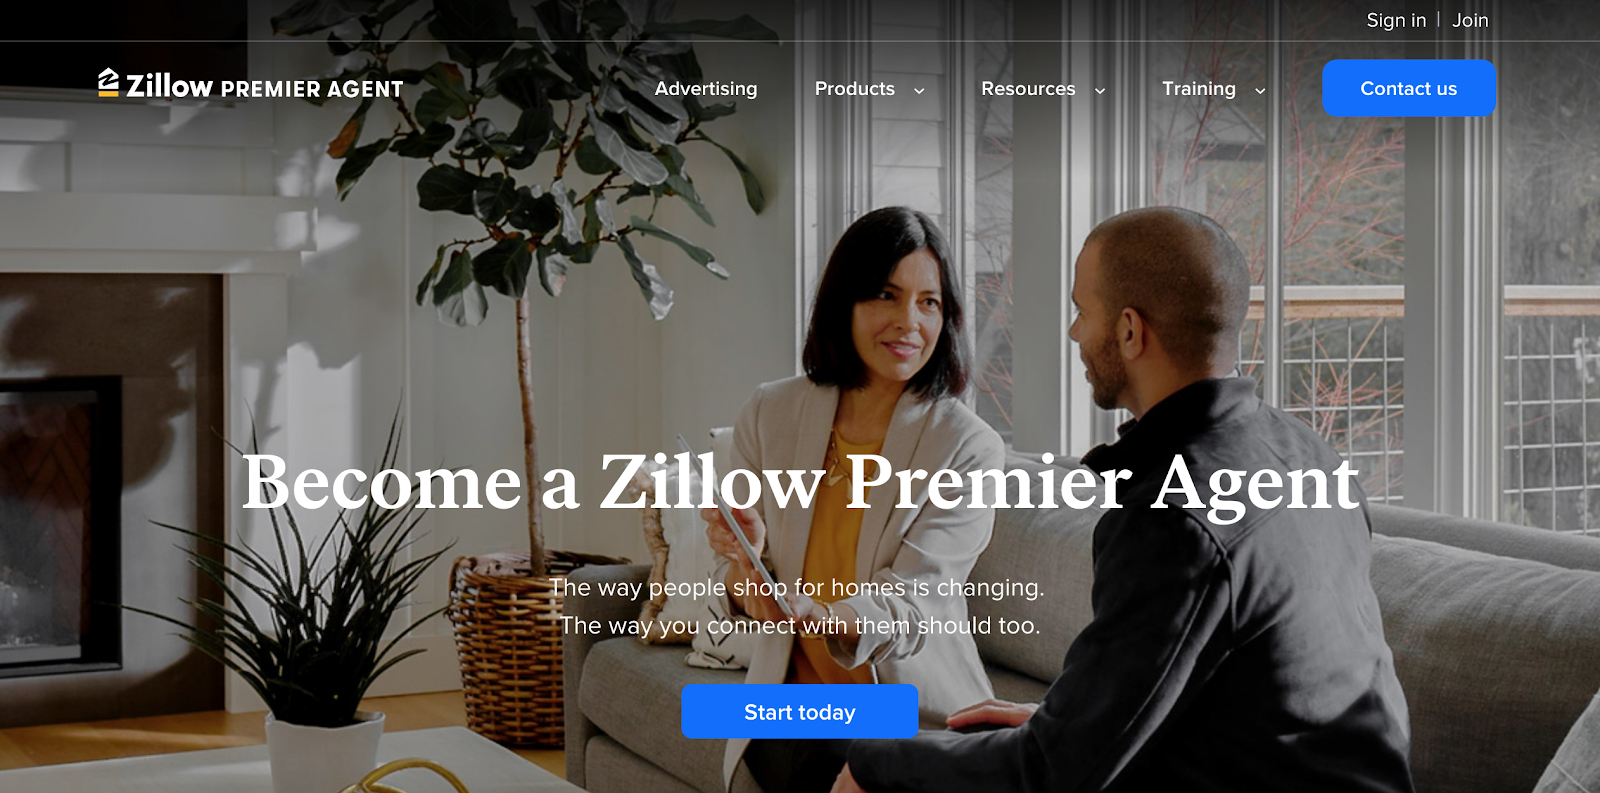 Zillow Premier Agent | Real Estate Marketing Tools